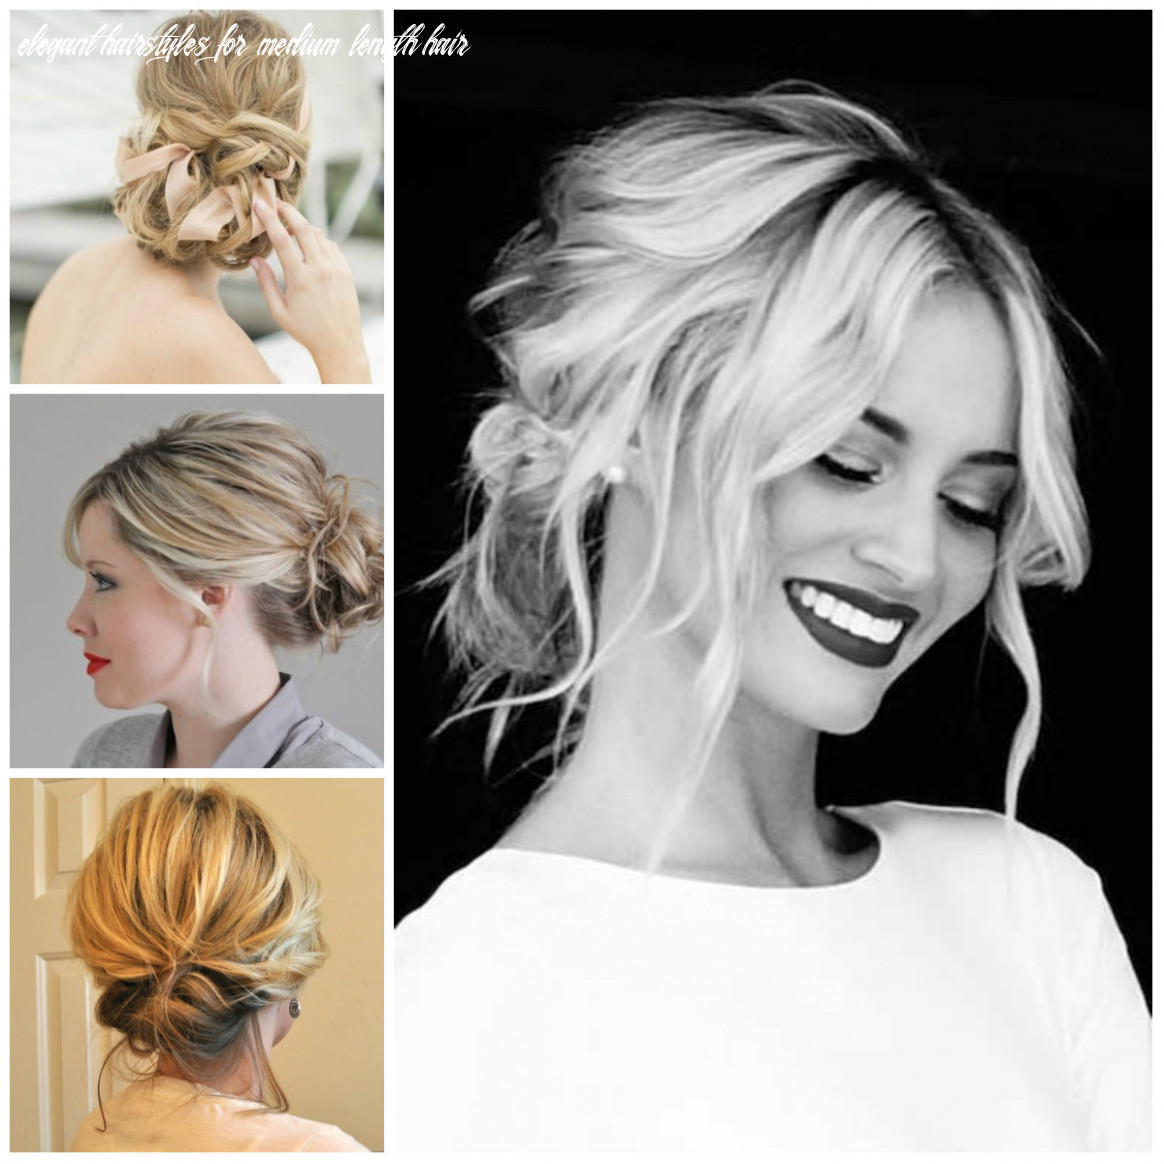 Hairstyle Updo Best Updos For Medium Length Hair - Hairstyles Magazine